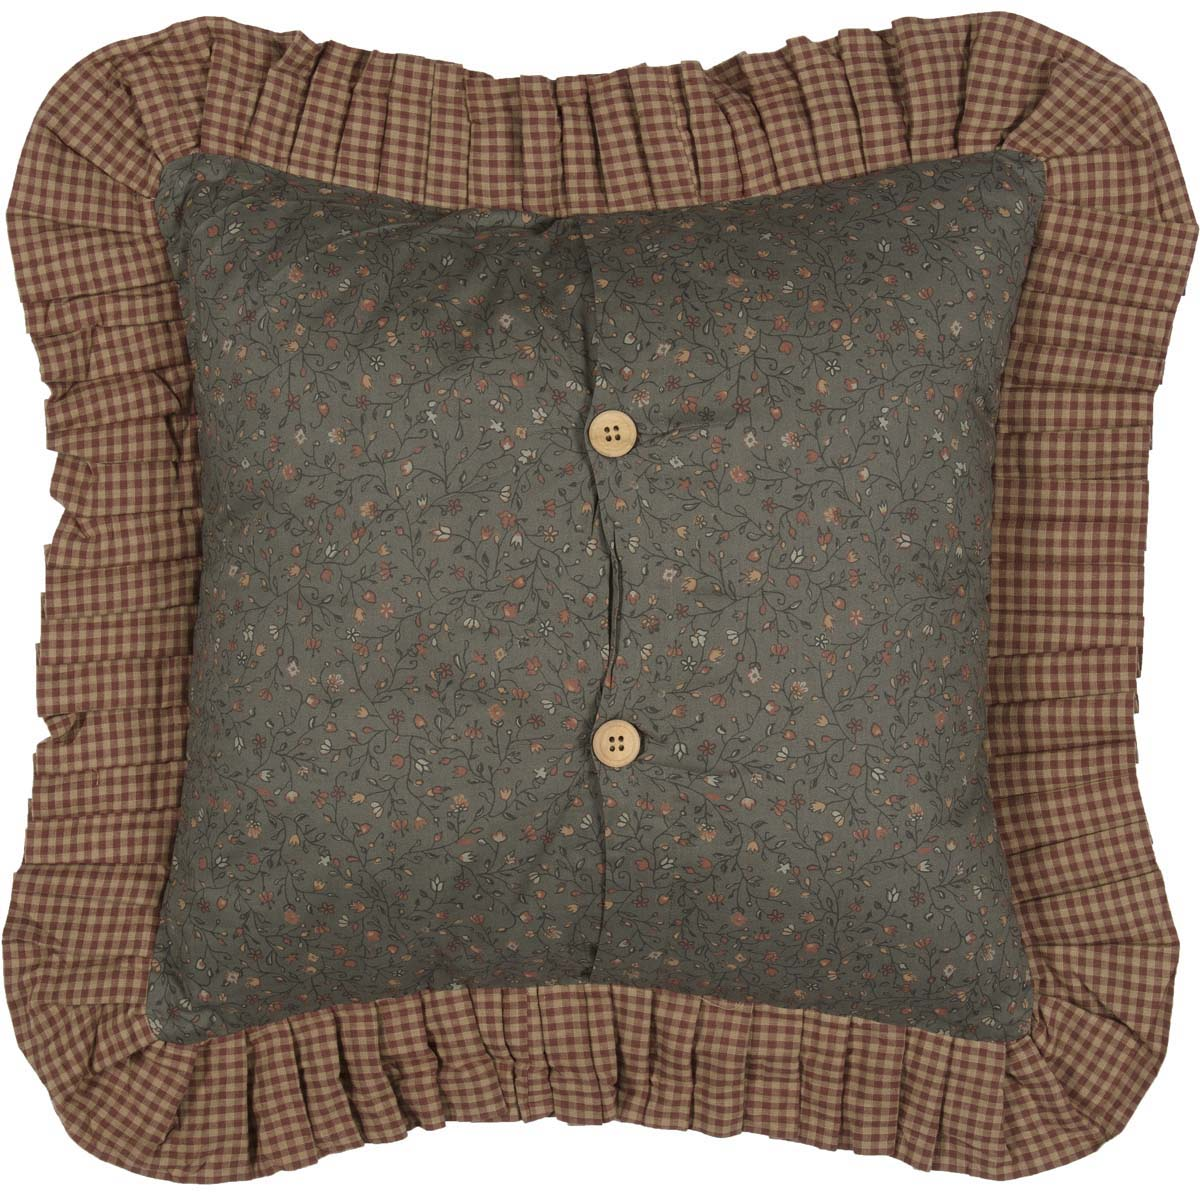 Fantastic Dark Olive Green Primitive Bedding Cinnamon Plaid Cotton Patchwork Square 18X18 Pillow Pillow Cover Pillow Insert Customarchery Wood Chair Design Ideas Customarcherynet